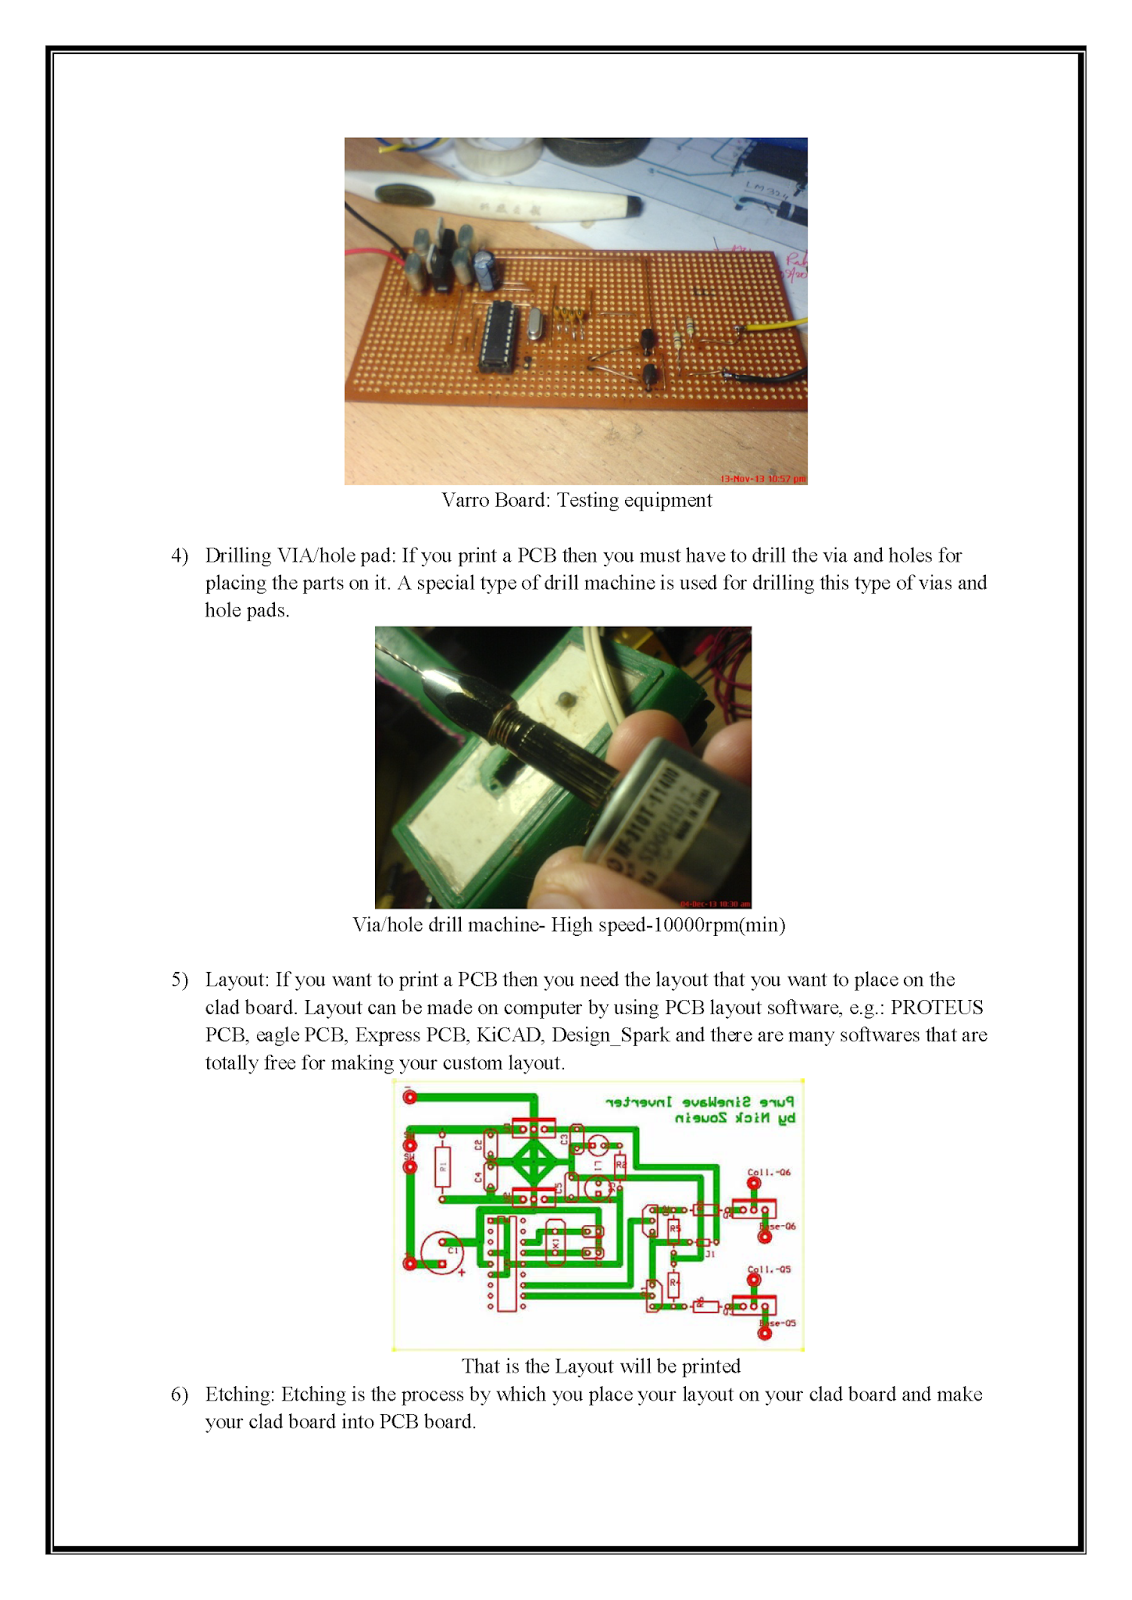 Making Pcb At Home Printed Circuit Board Print Your Make If You Are Planning To Layout On A Copper And Want Custom Then My This Attached Hand Note Will Help